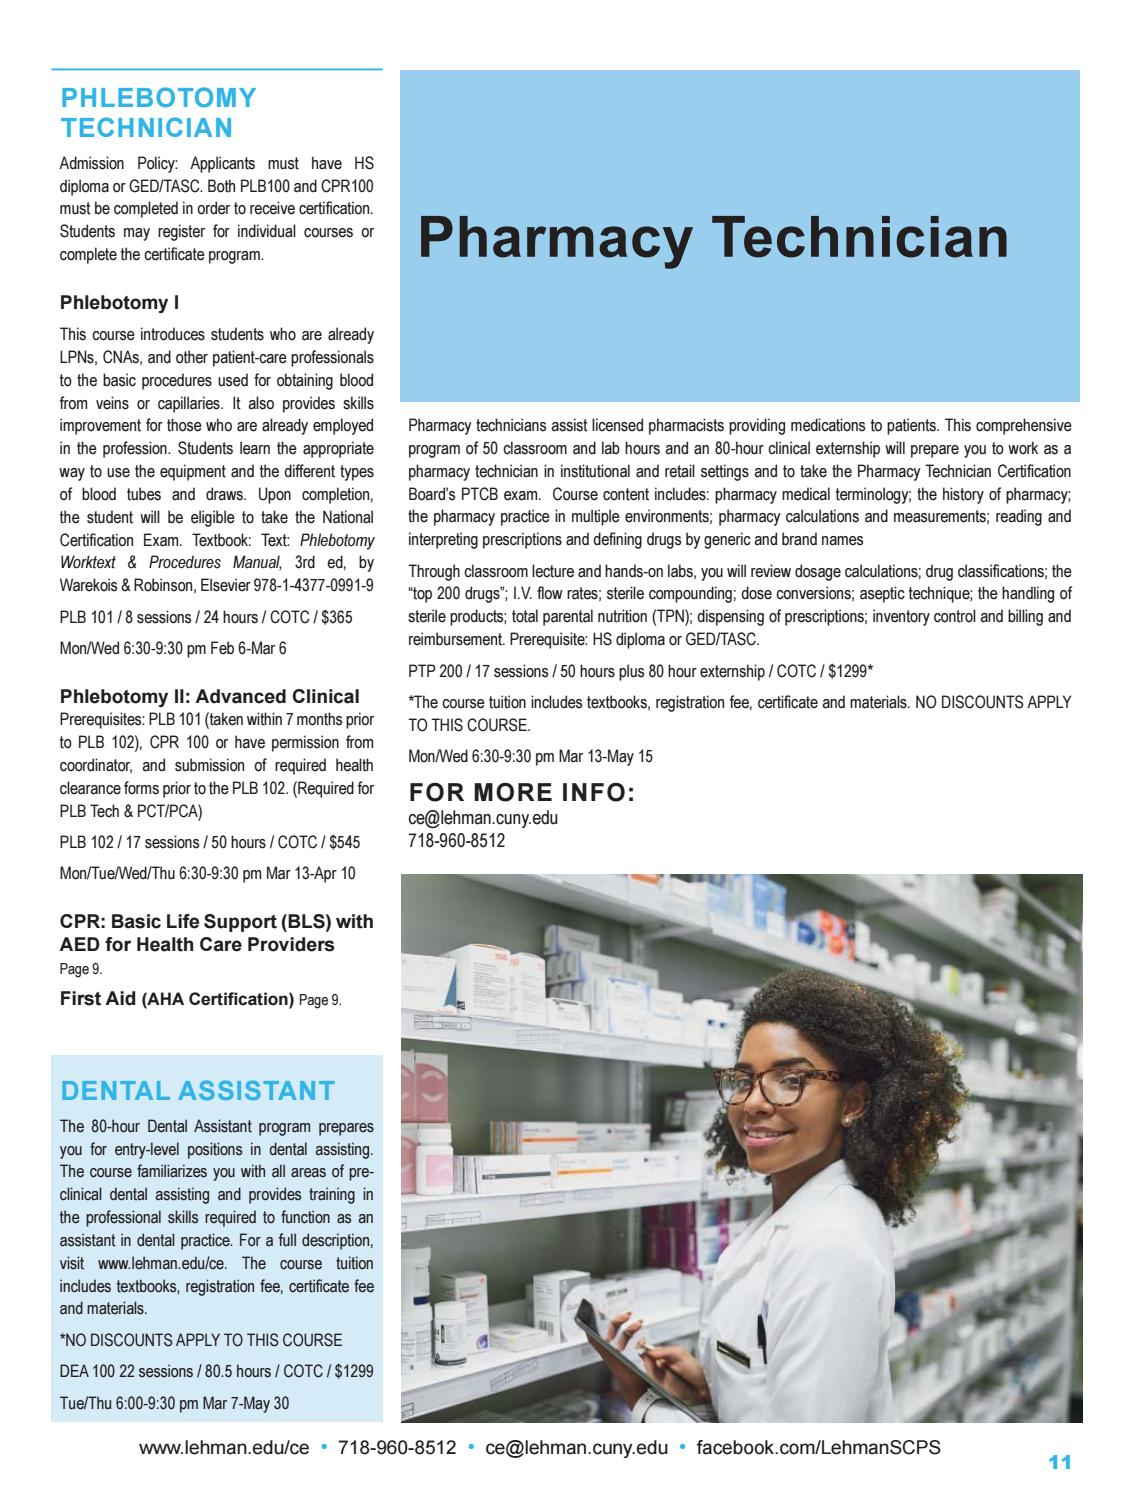 Lehman College Scps Spring 2019 Catalog By Lehman College Scps Issuu